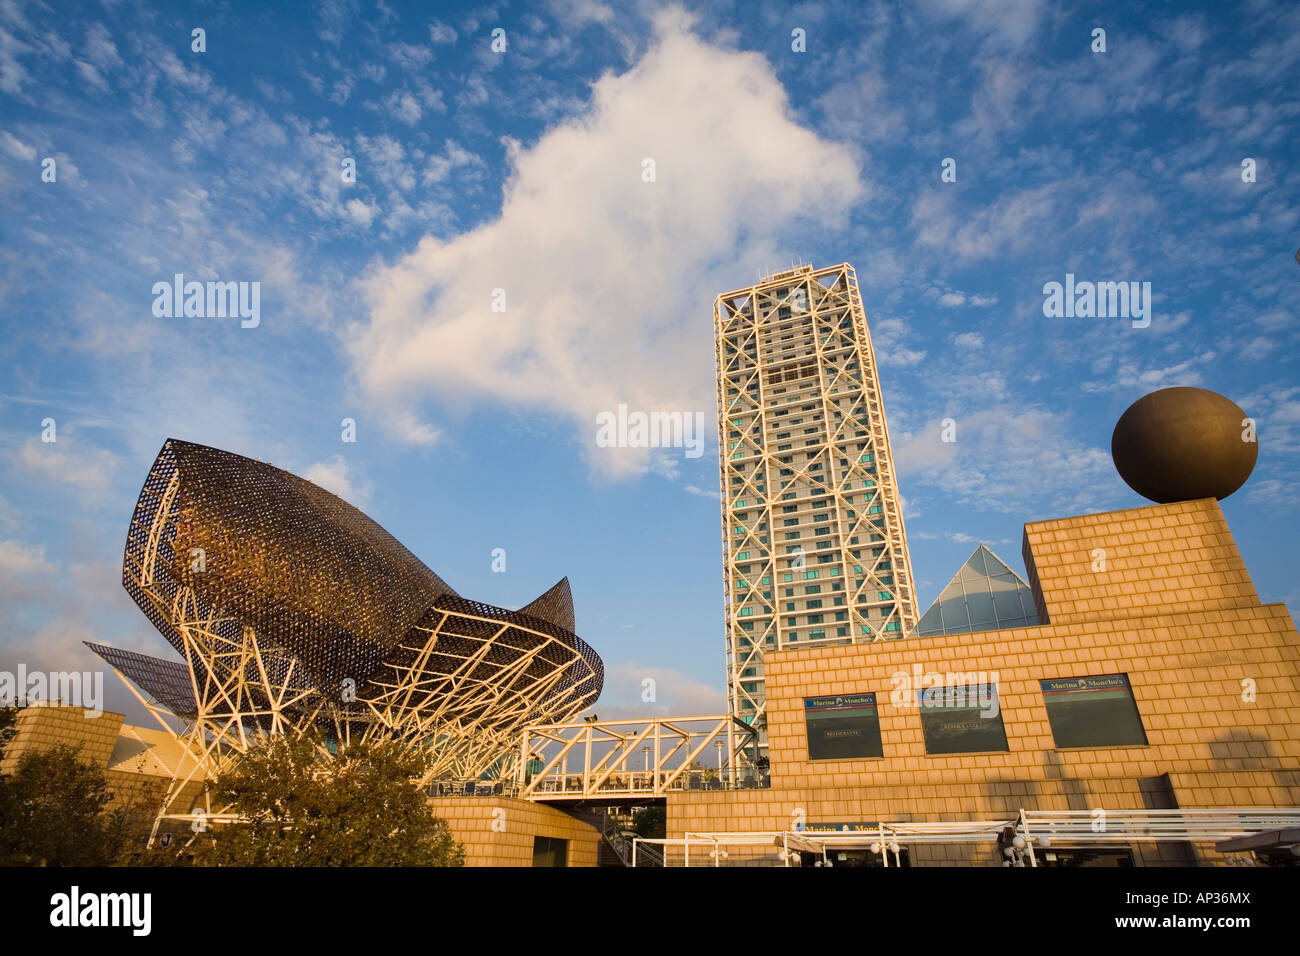 Fish, sculpture by Frank O. Gehry, Port Olimpic, Vila Olimpica, Barcelona, Spain - Stock Image